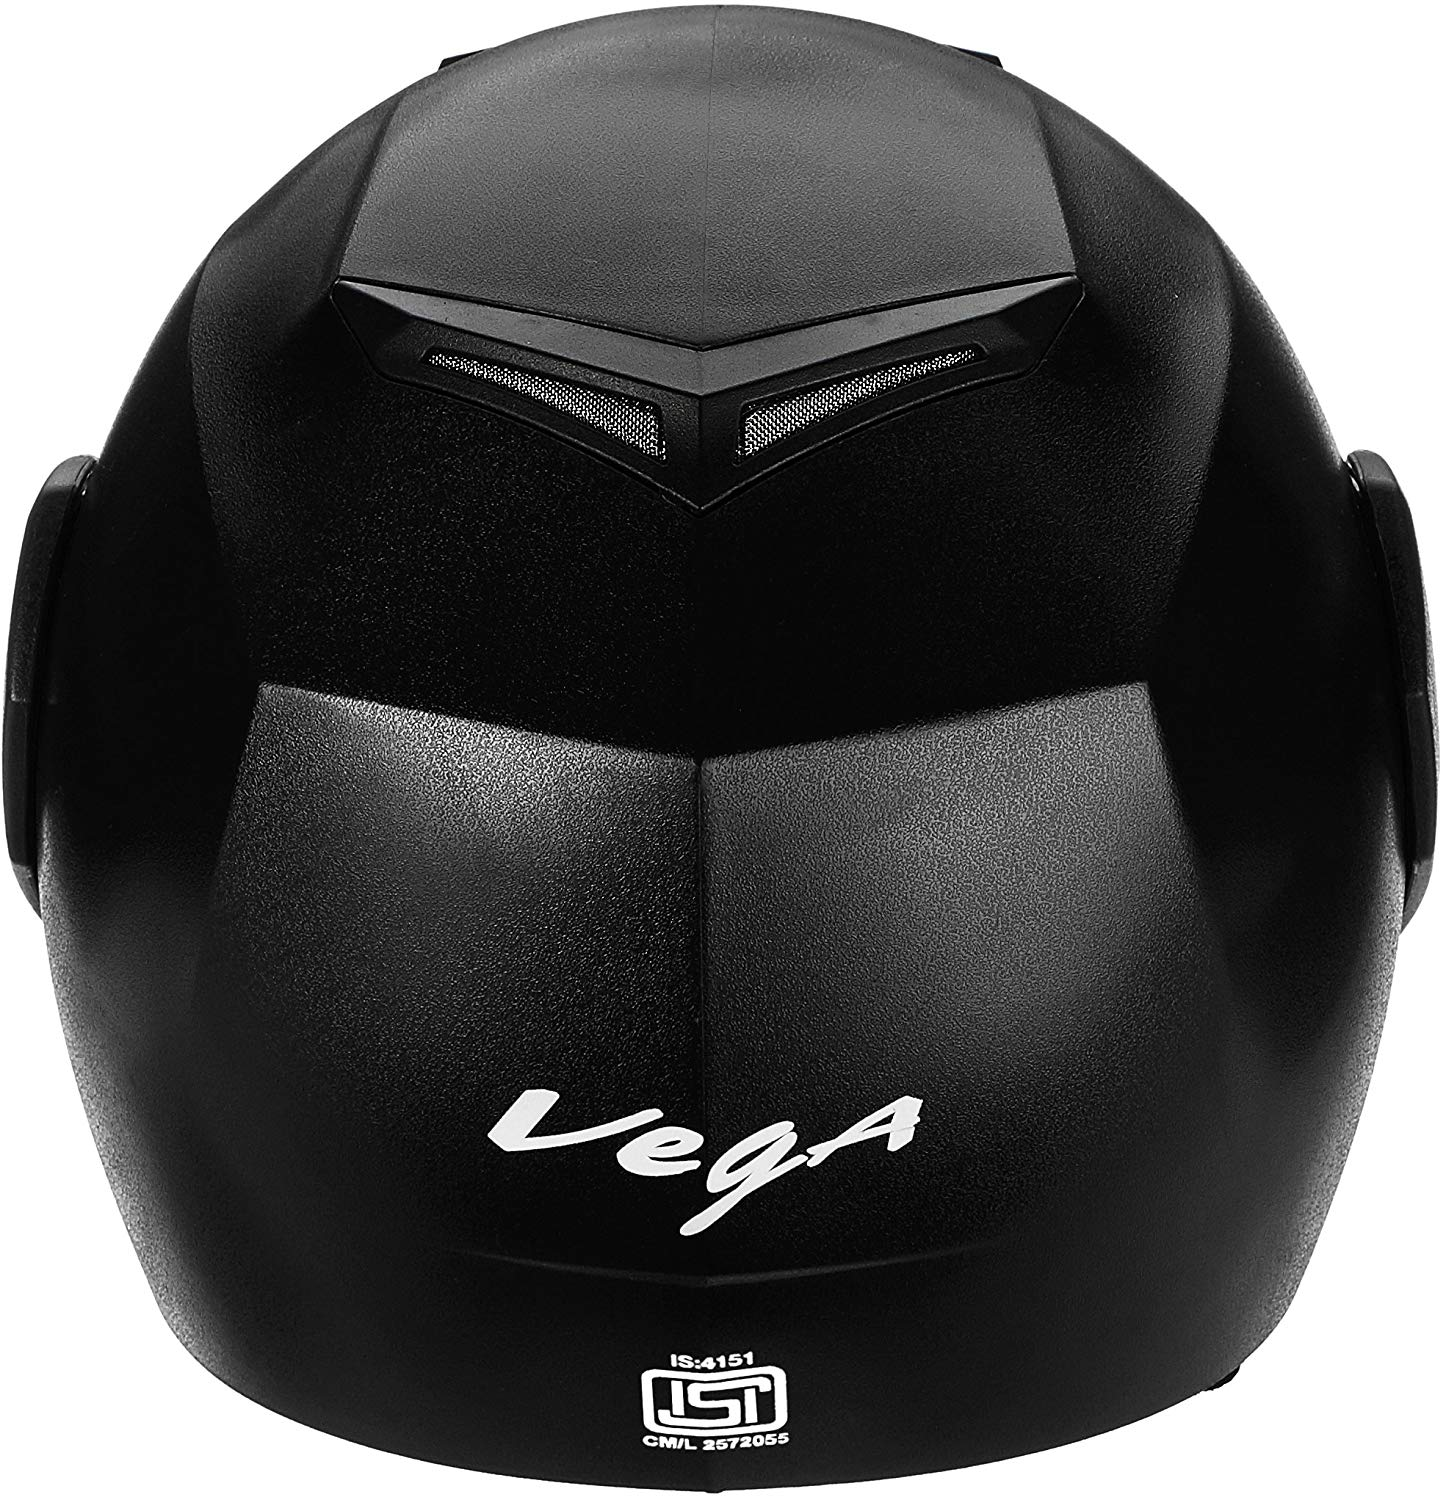 Vega Crux Flip-up Helmet